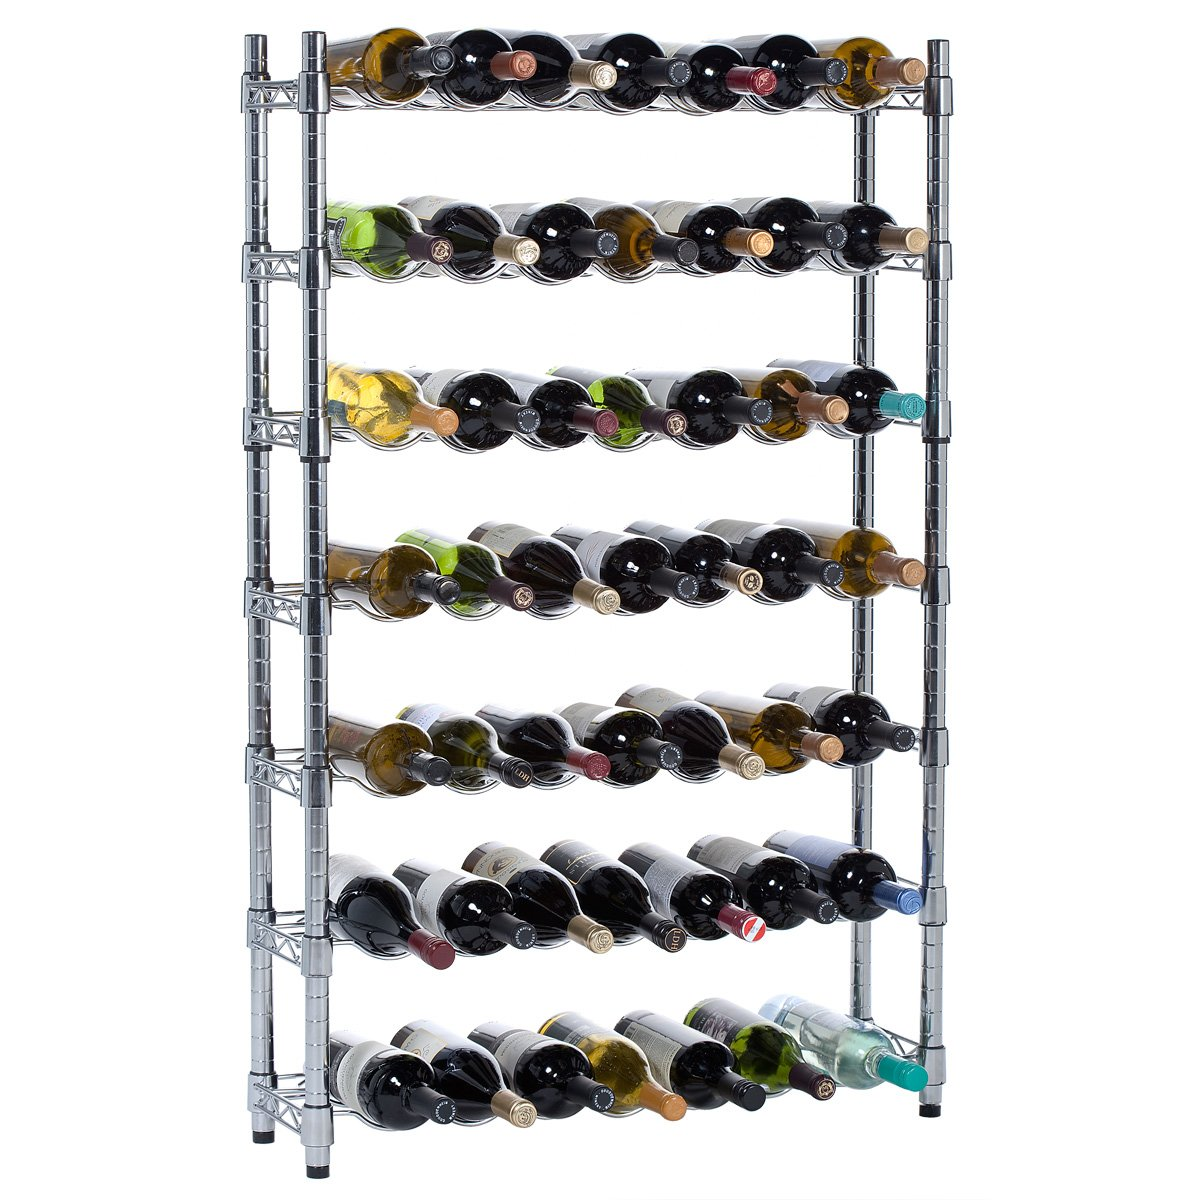 Oenophilia Epicurean Wine Rack Storage System,  7 Row - 91 Bottle by Oenophilia